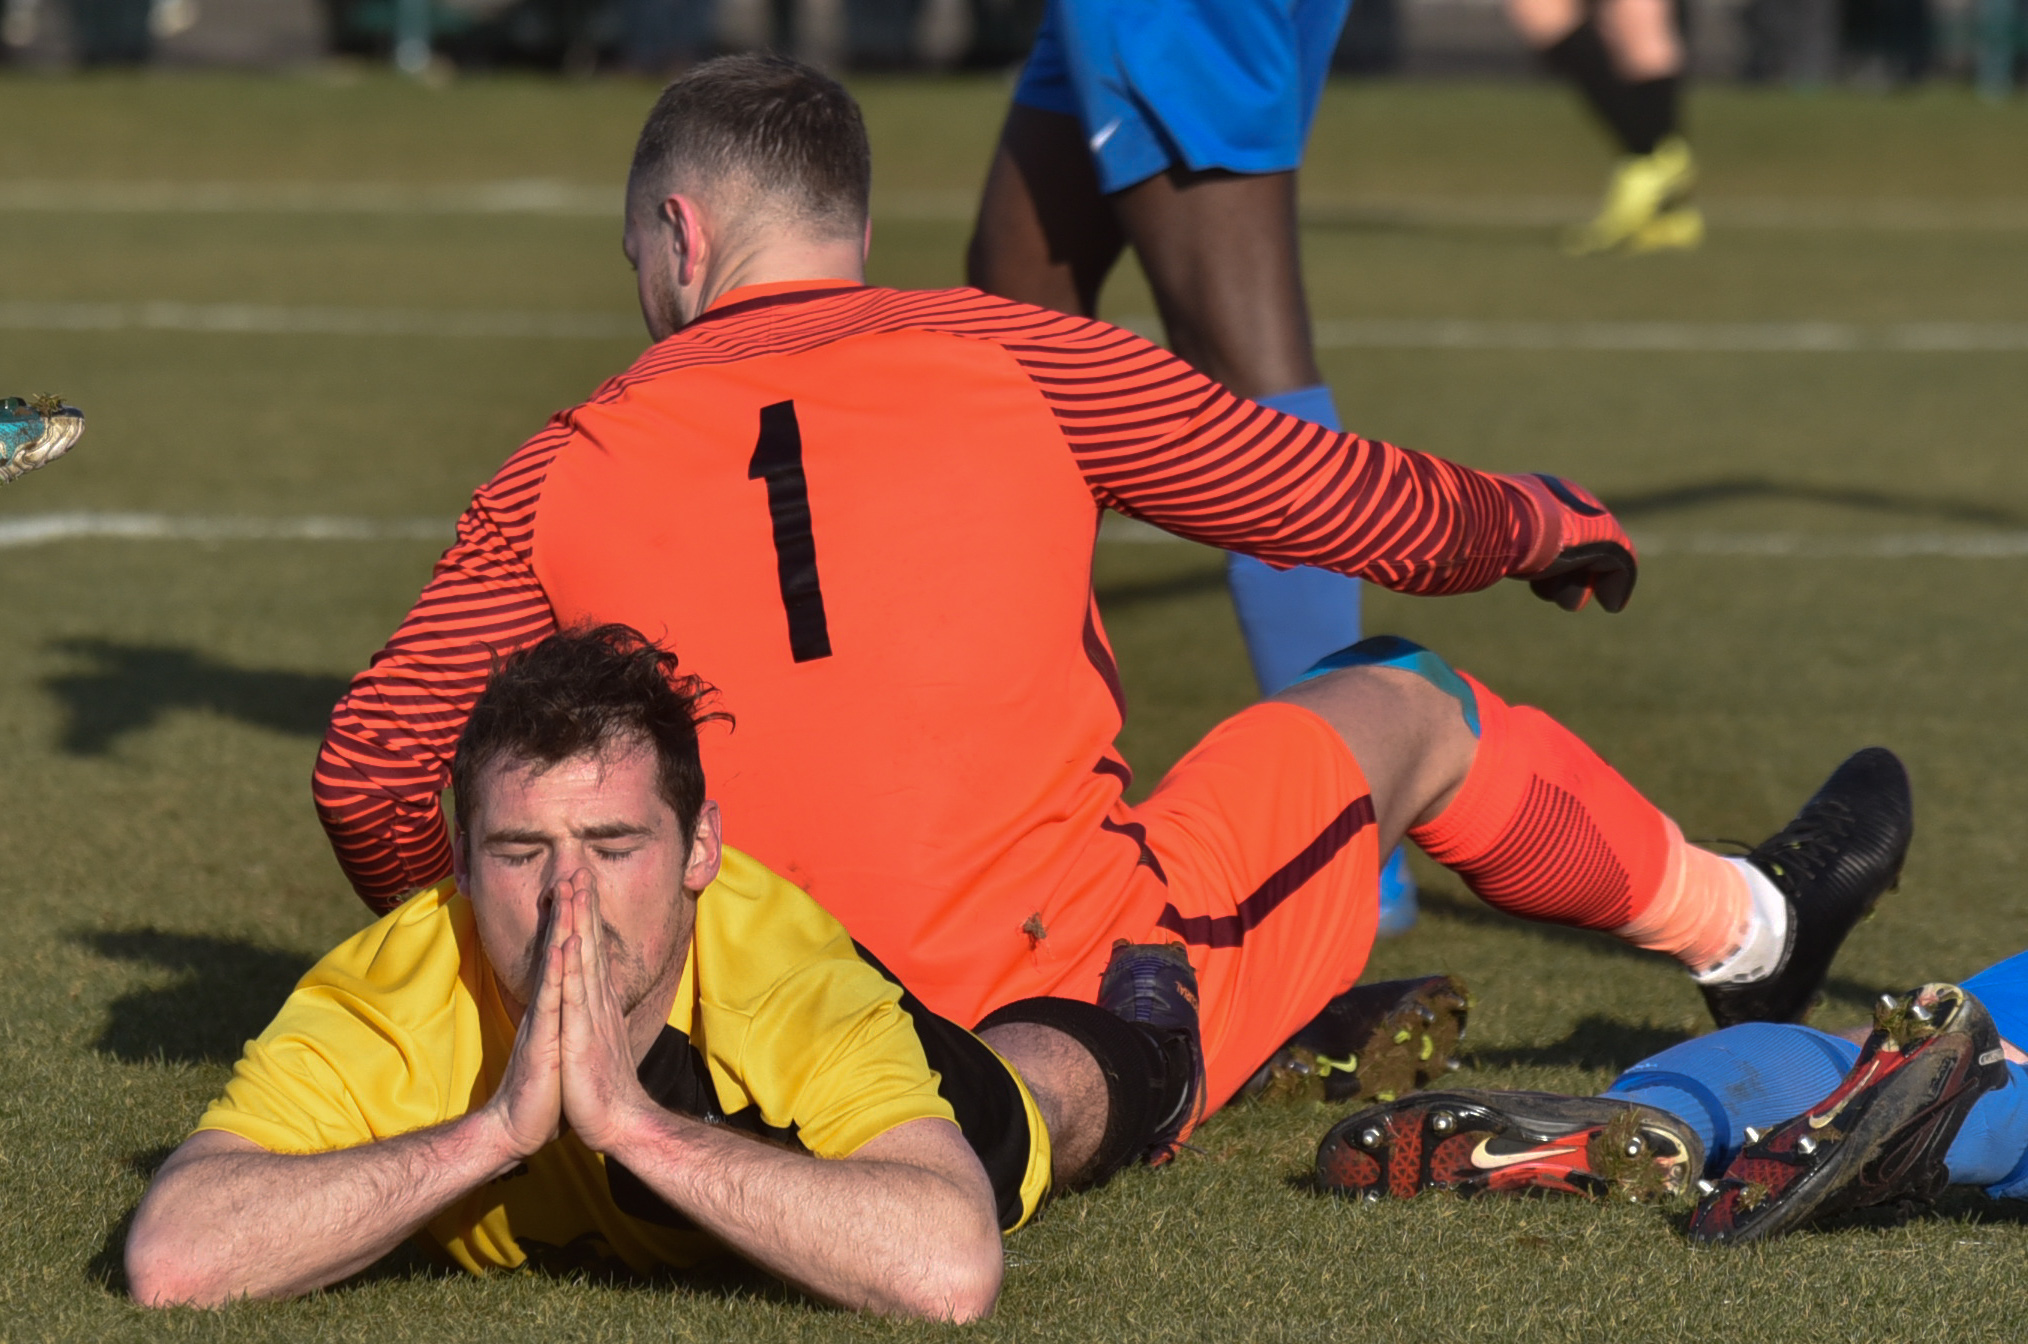 Melksham Town's Luke Ballinger is thwarted by the Thatcham Town goalkeeper. PICTURE: GLENN PHILLIPS